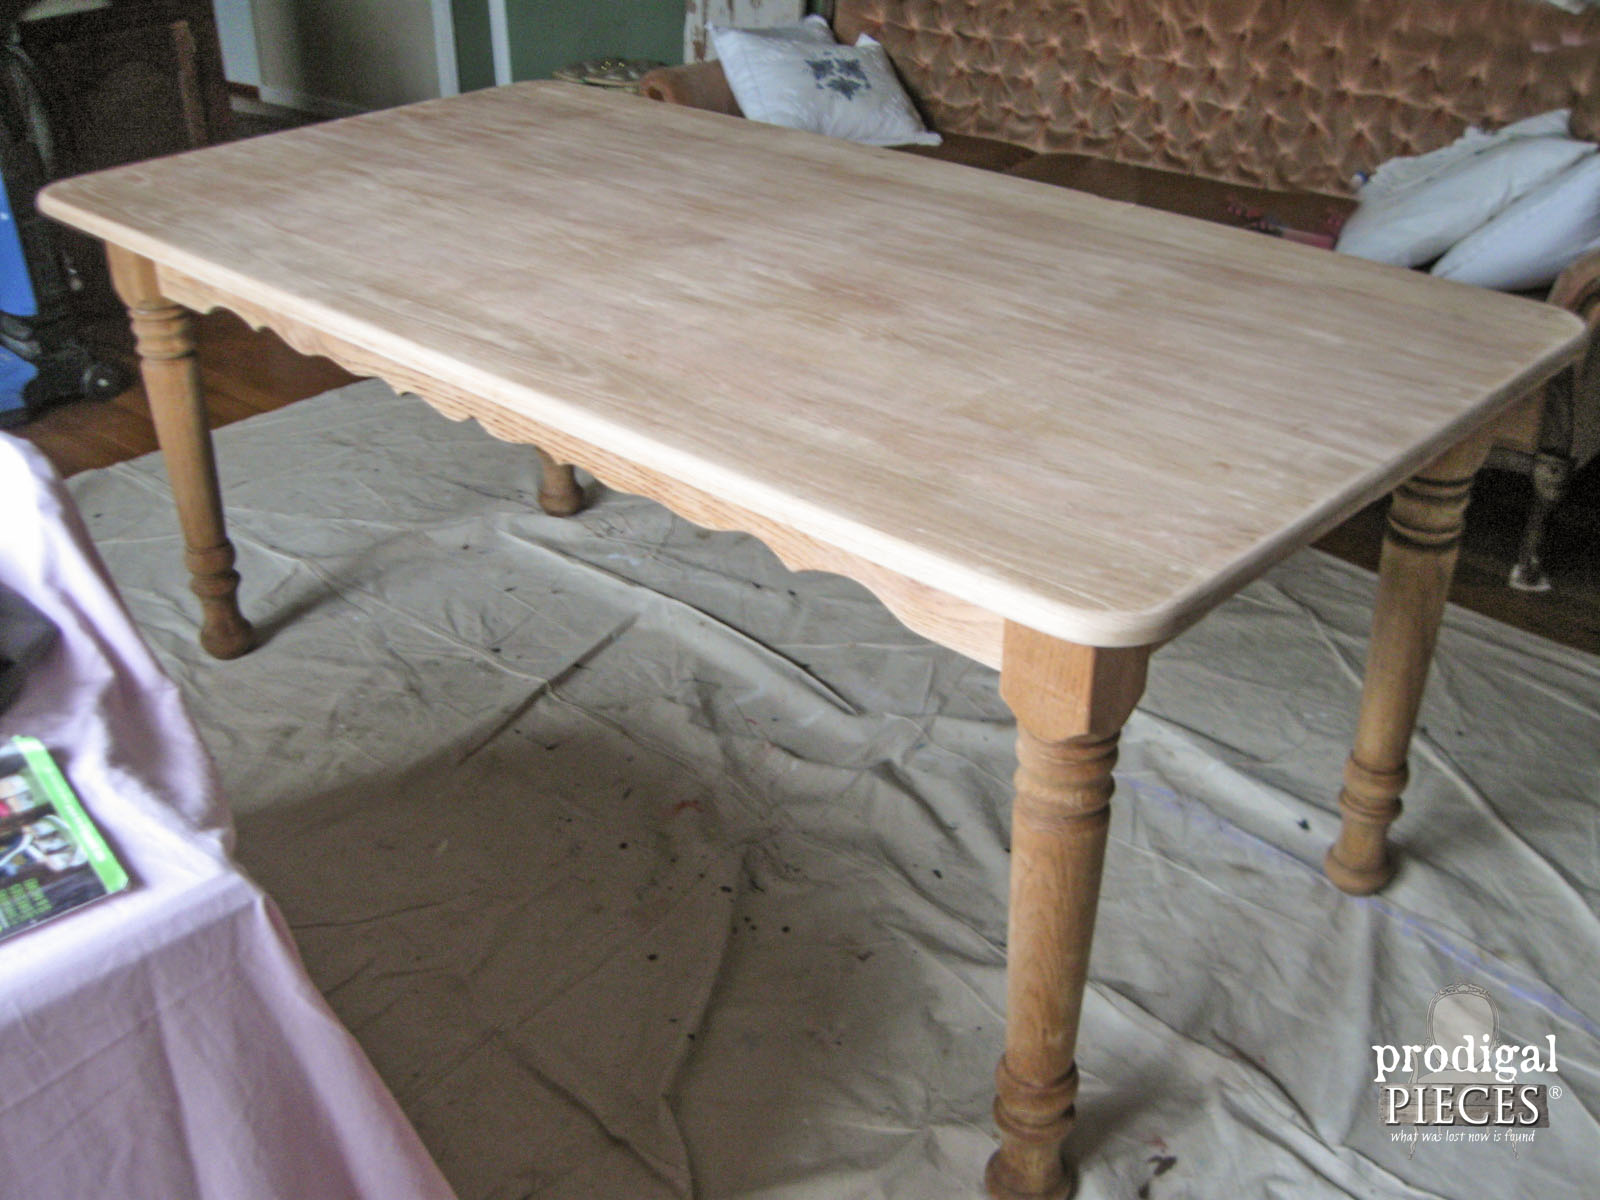 Amazing Side View Of Farmhouse Table For Whitewash | Prodigal Pieces |  Www.prodigalpieces.com